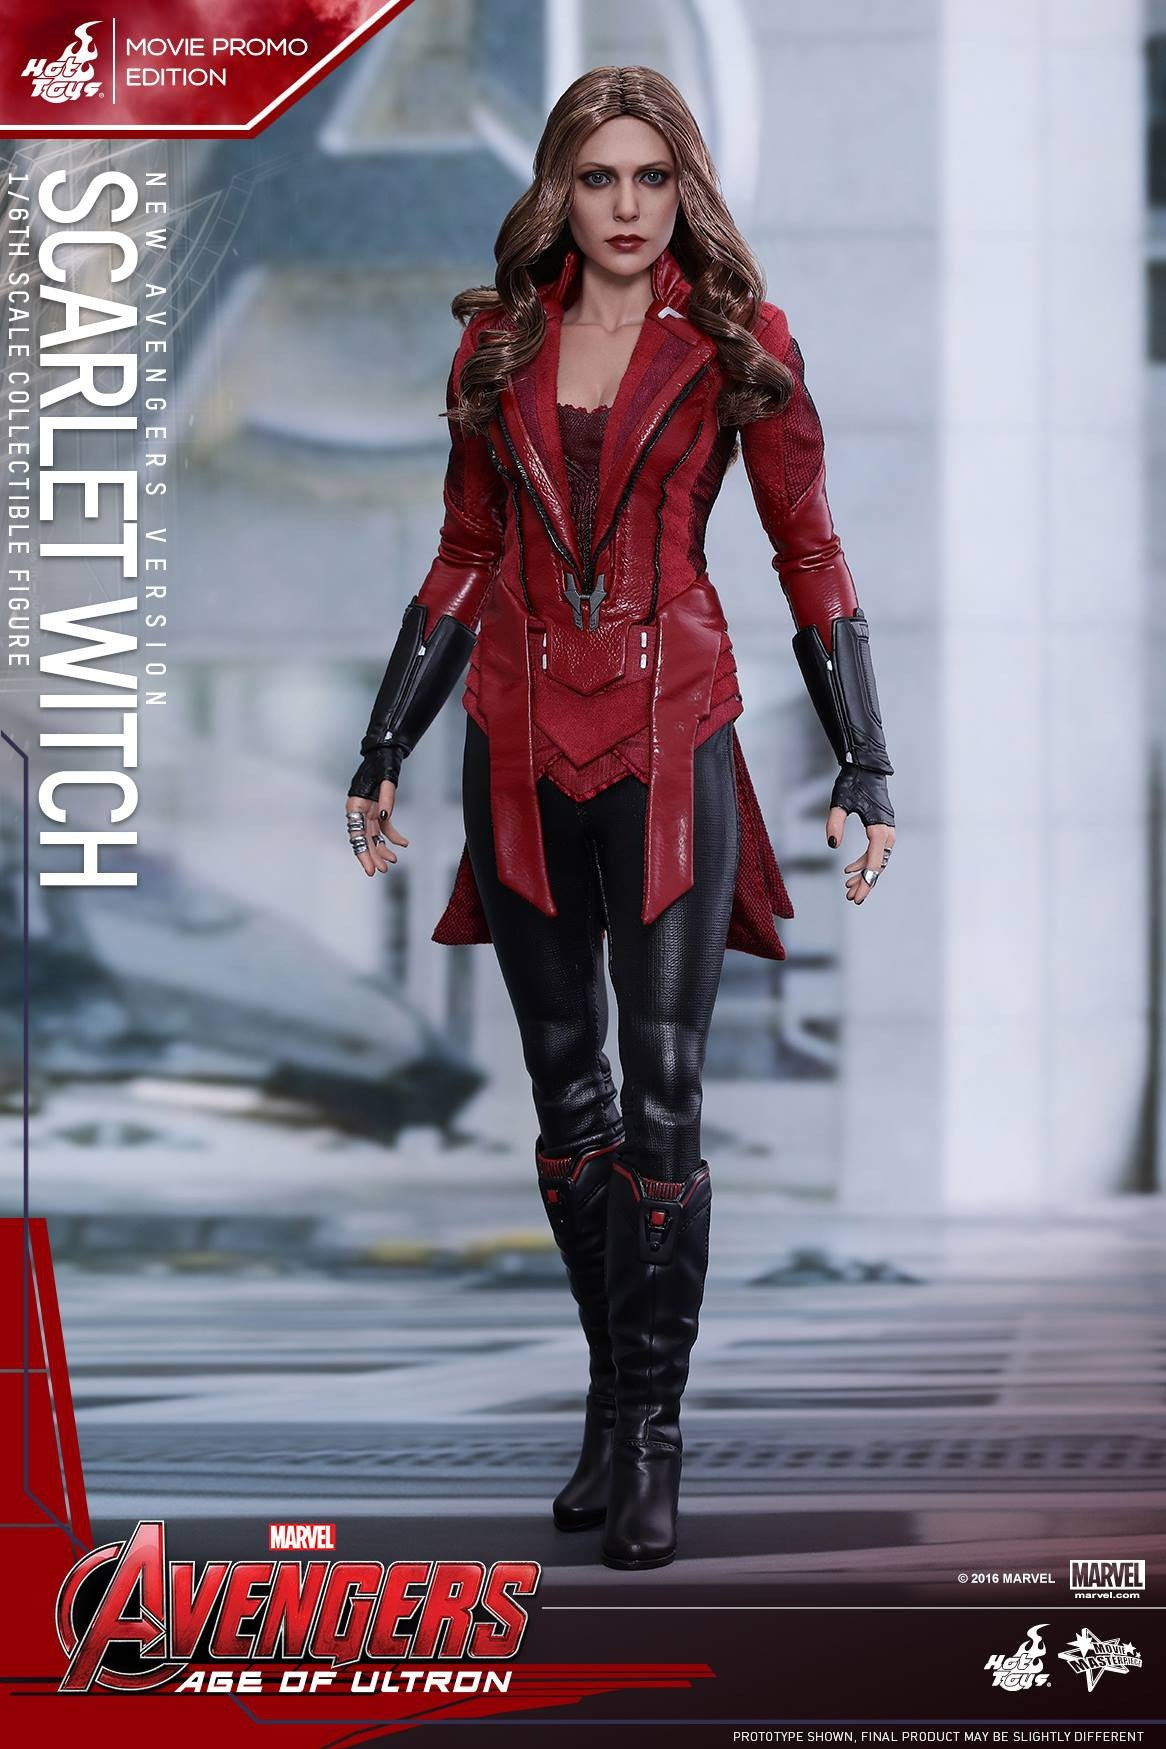 Toys - Avengers: Age of Ultron - Scarlet Witch (New Avengers Version) Movie Promo MMS357 - Marvelous Toys - 4